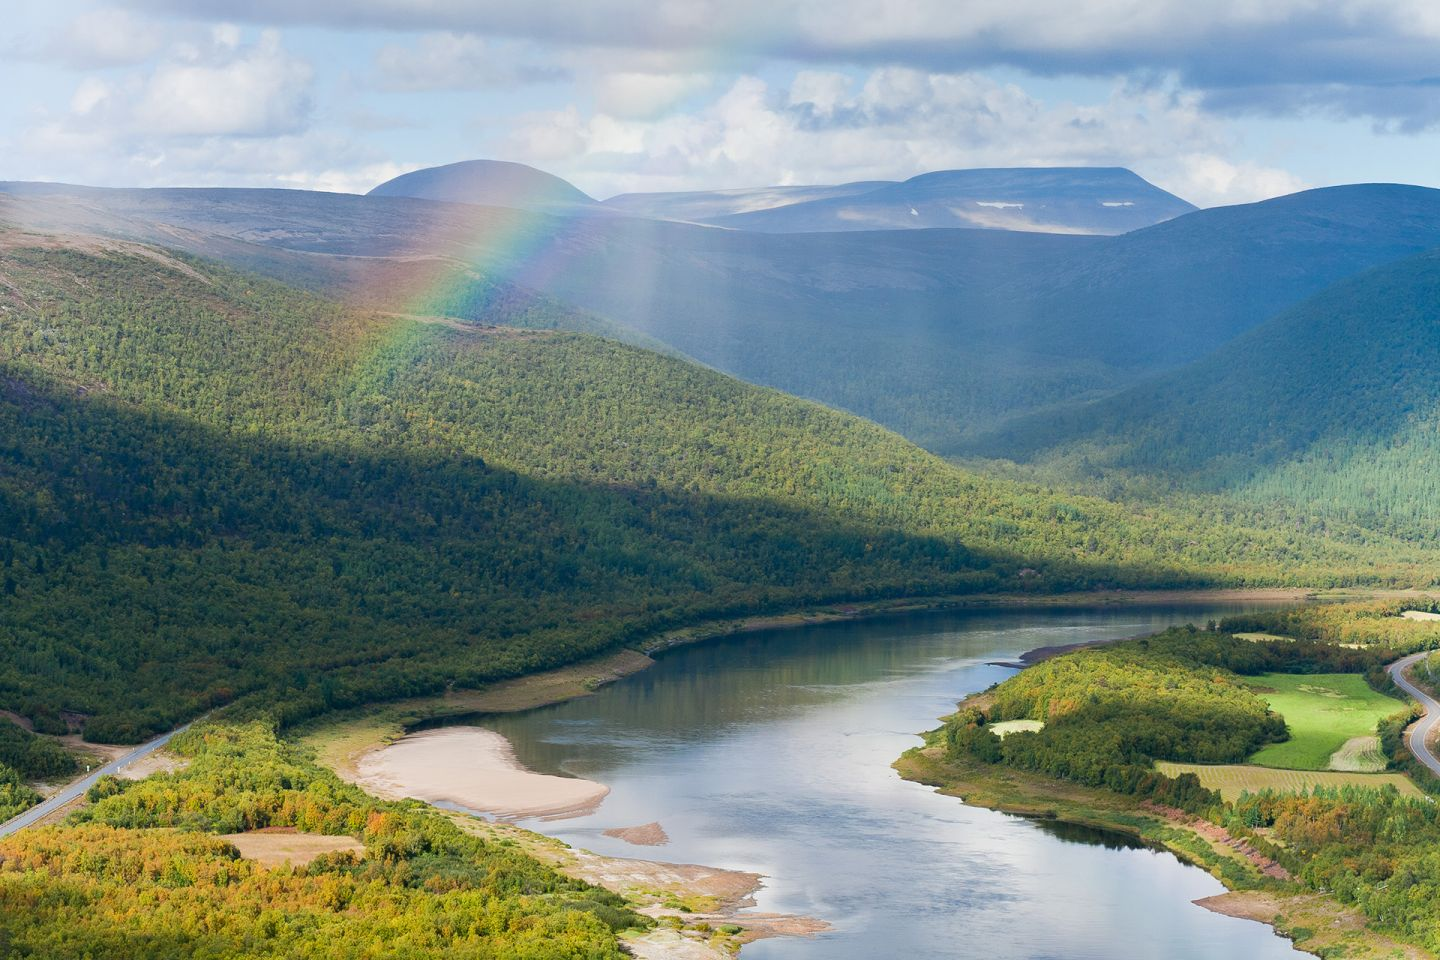 Beautiful landscape with rainbow and scandinavian mountains in Utsjoki, Finland